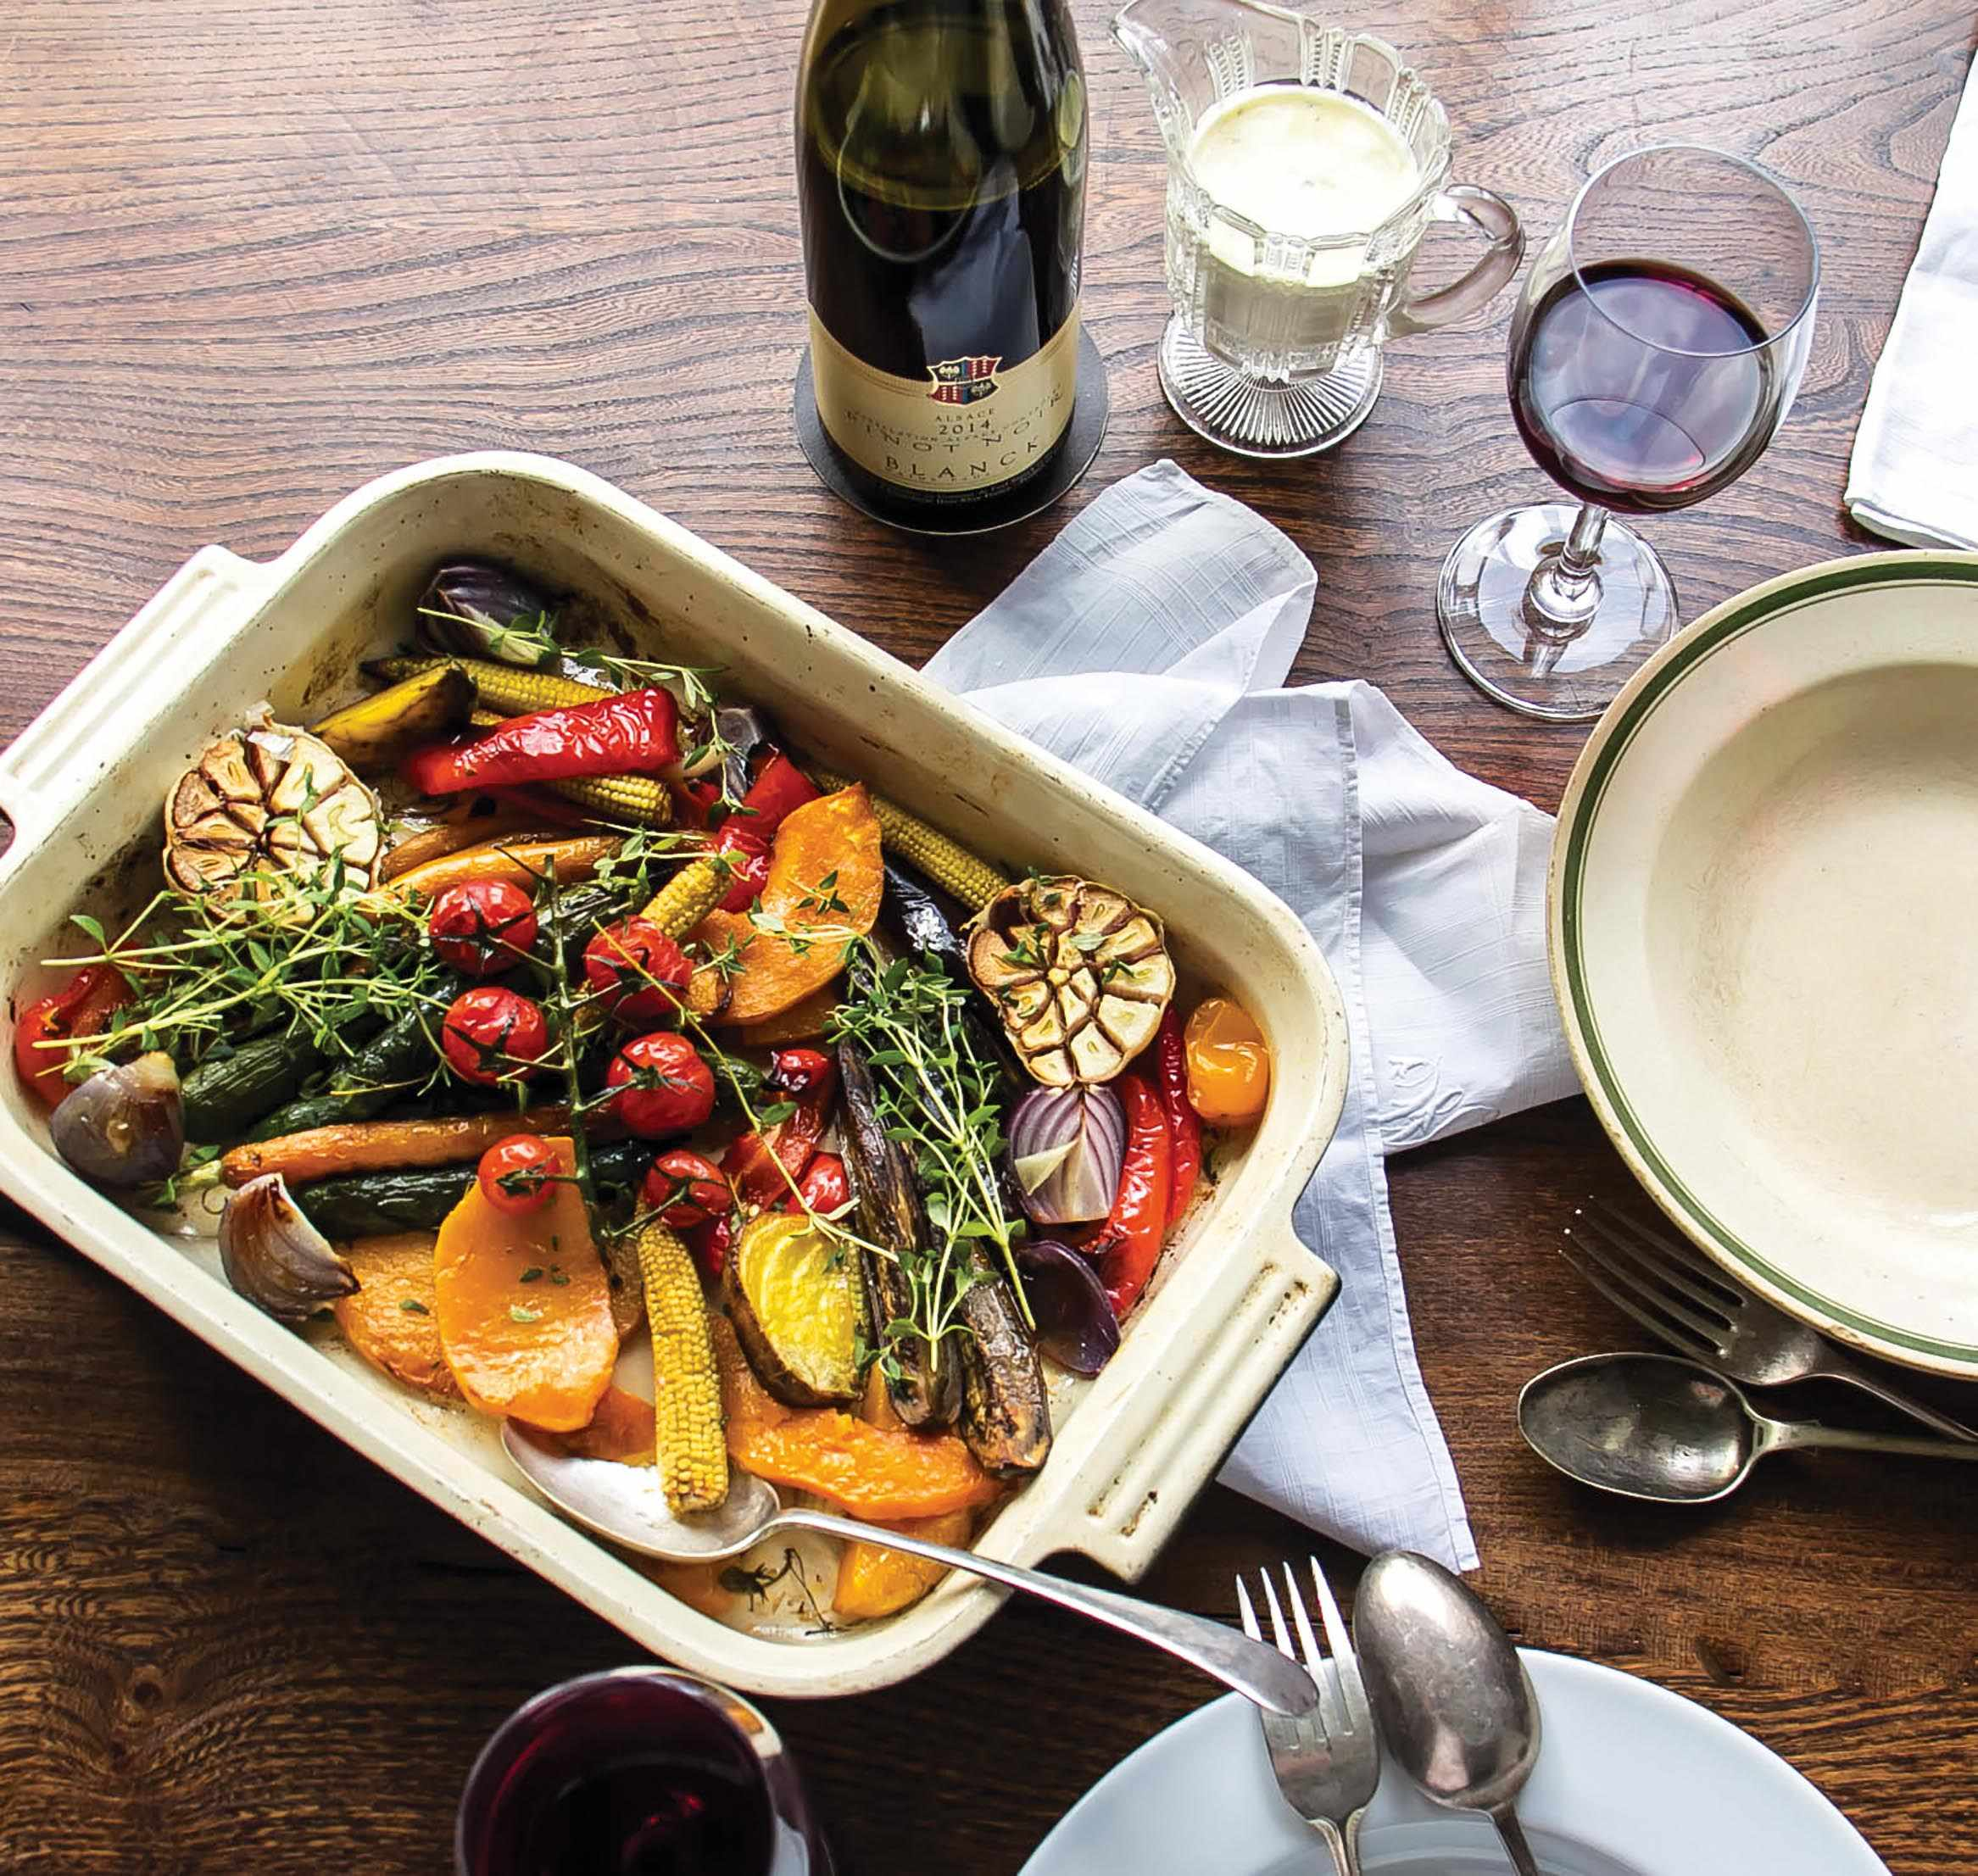 Mixed roasted vegetables recipe by Rosana McPhee